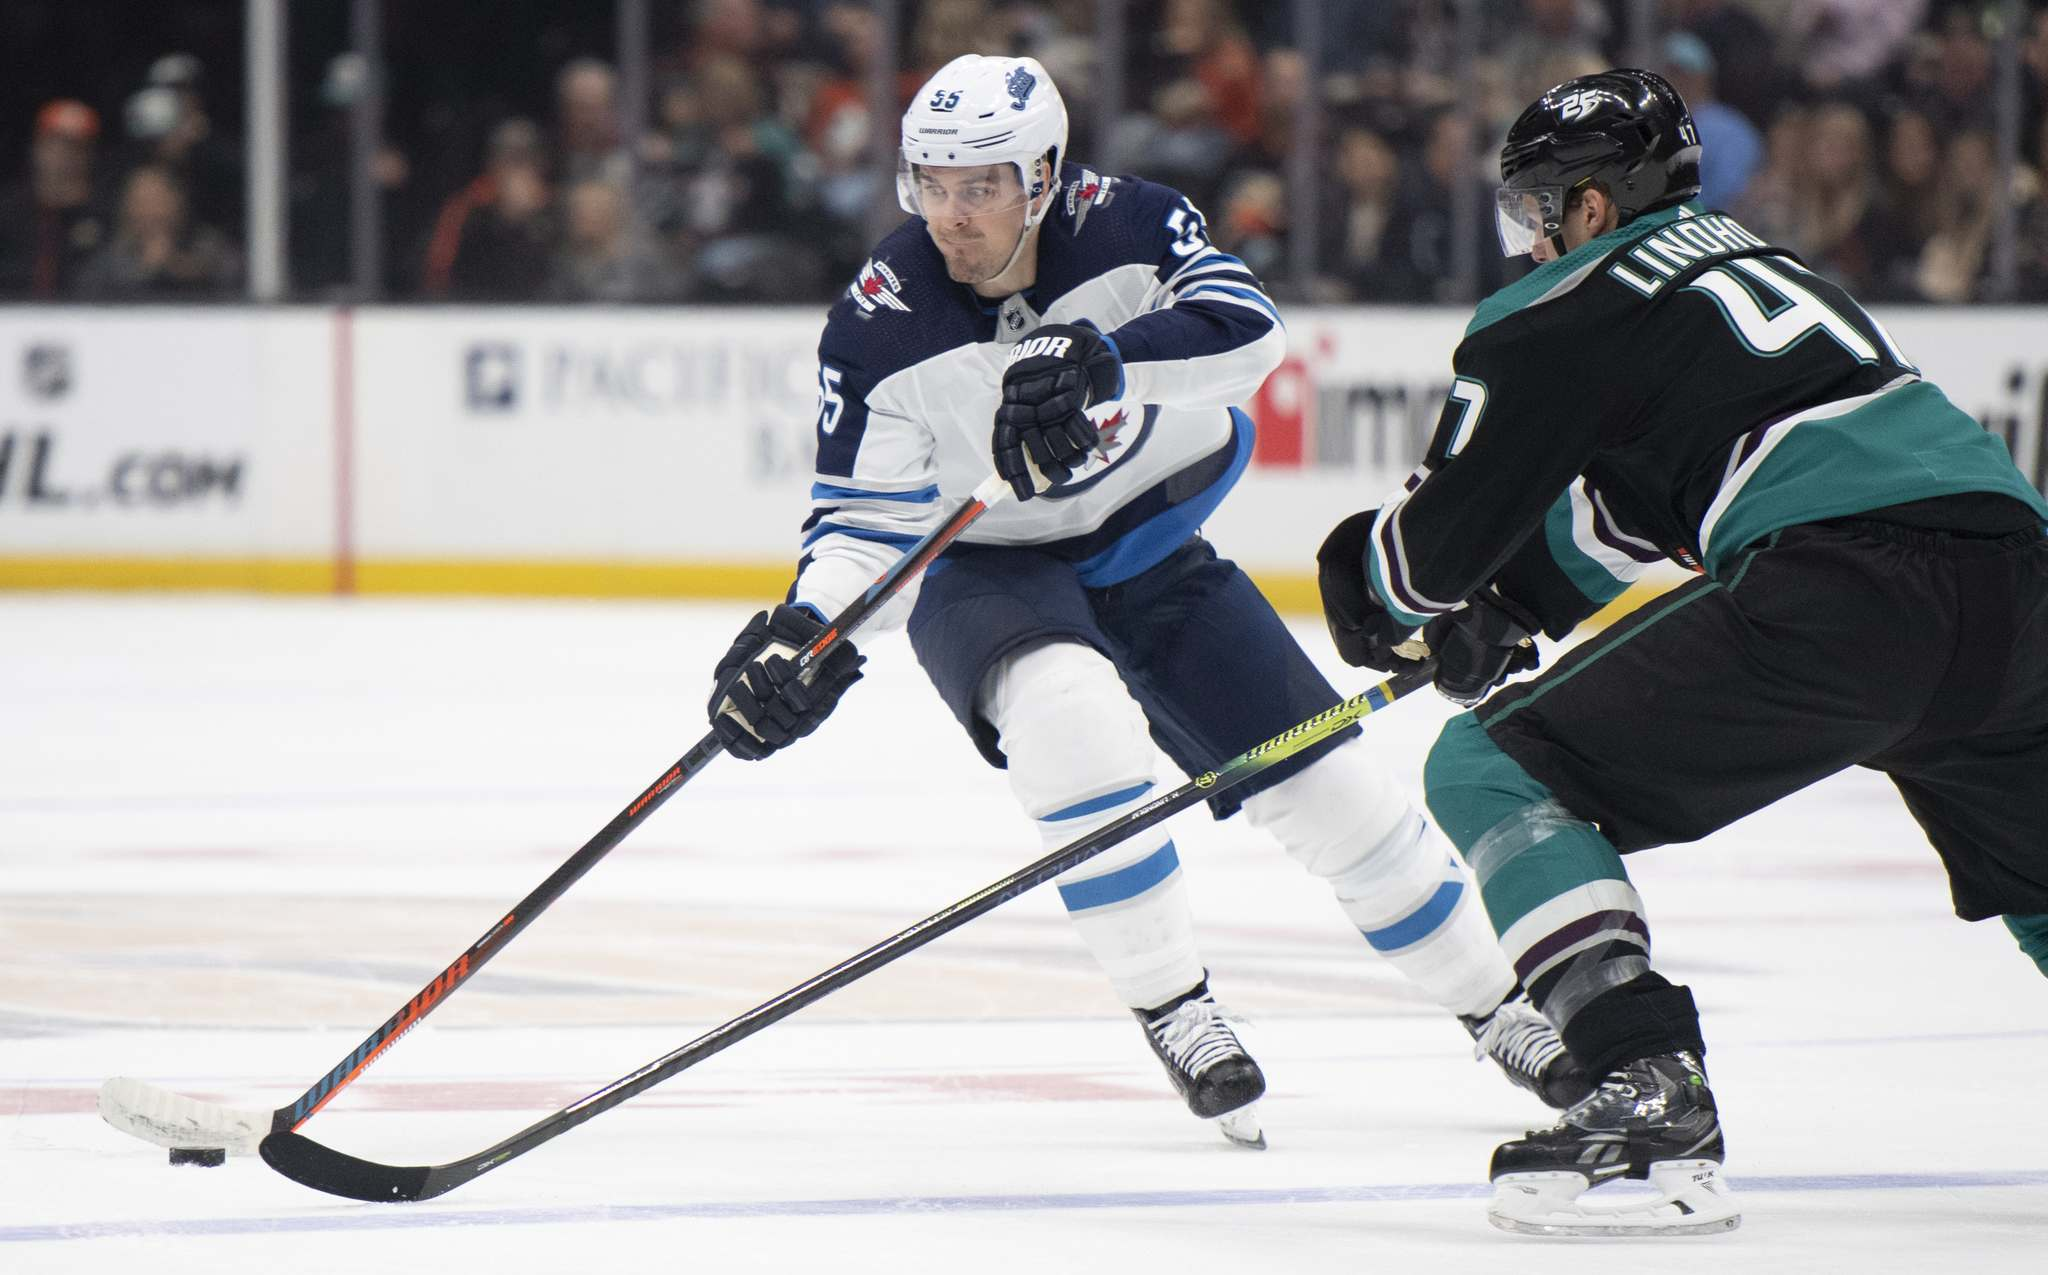 (AP Photo/Kyusung Gong)</p><p>Winnipeg Jets centre Mark Scheifele, left, on the team&#39;s win against the Anaheim Ducks, Wednesday: &#34;It definitely wasn&rsquo;t our best game, but we&rsquo;re happy to get the win and move on.&#34;</p>